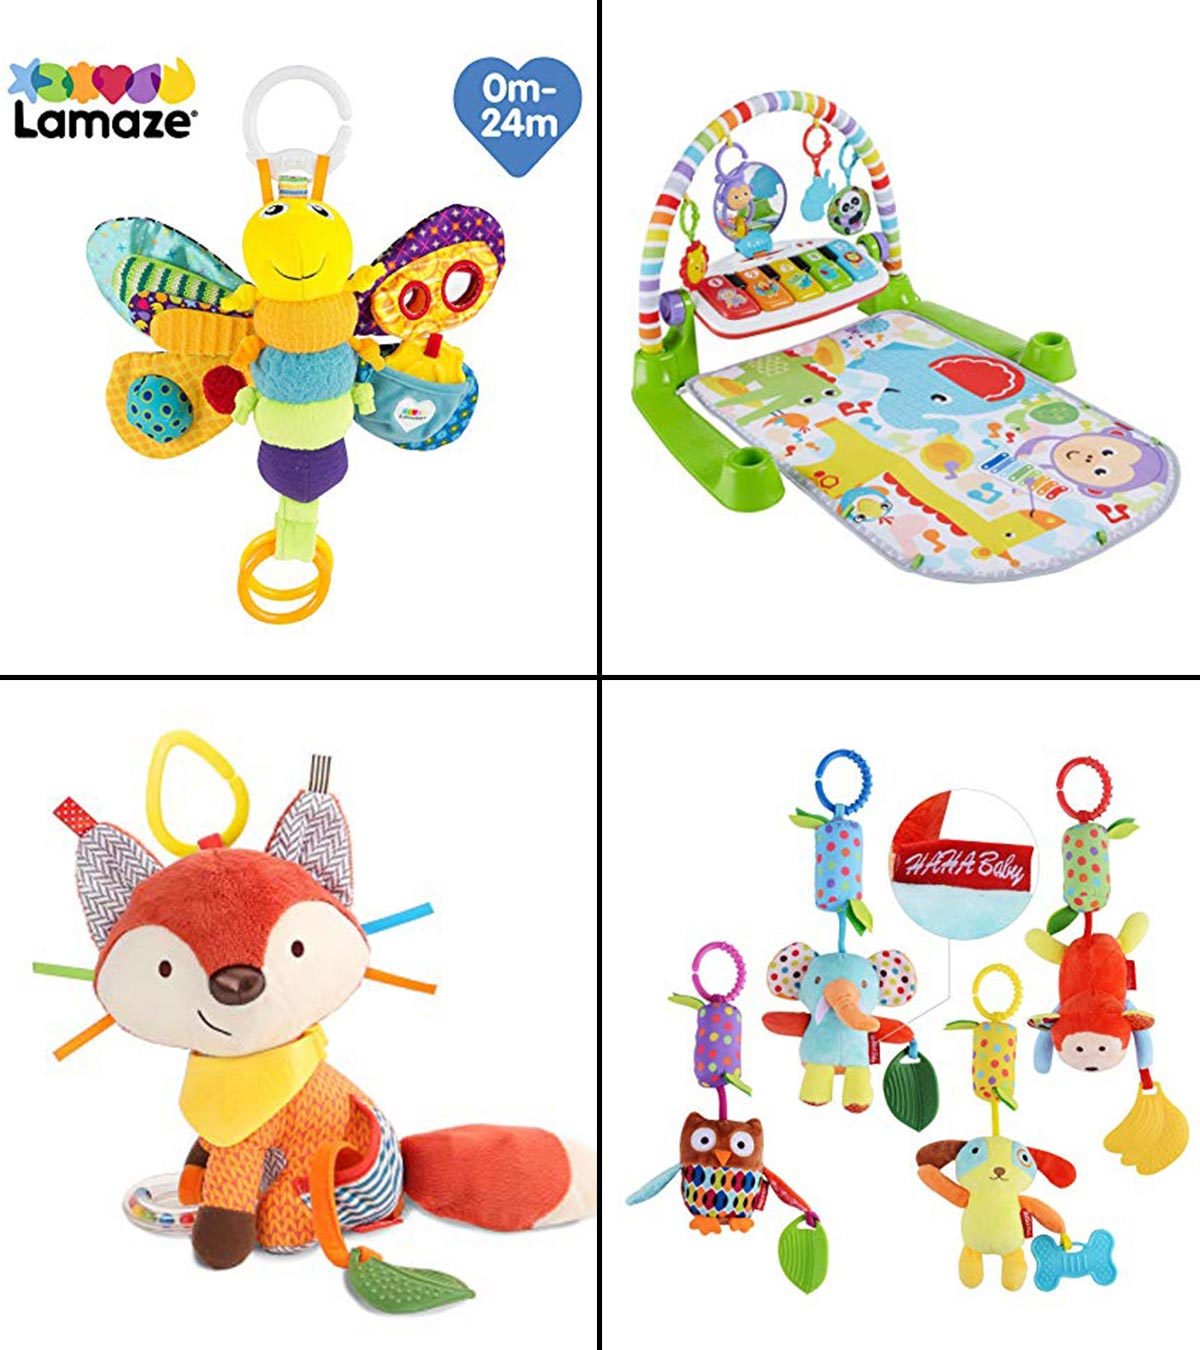 13 Best Toys For 1 Month Old Baby In 2020